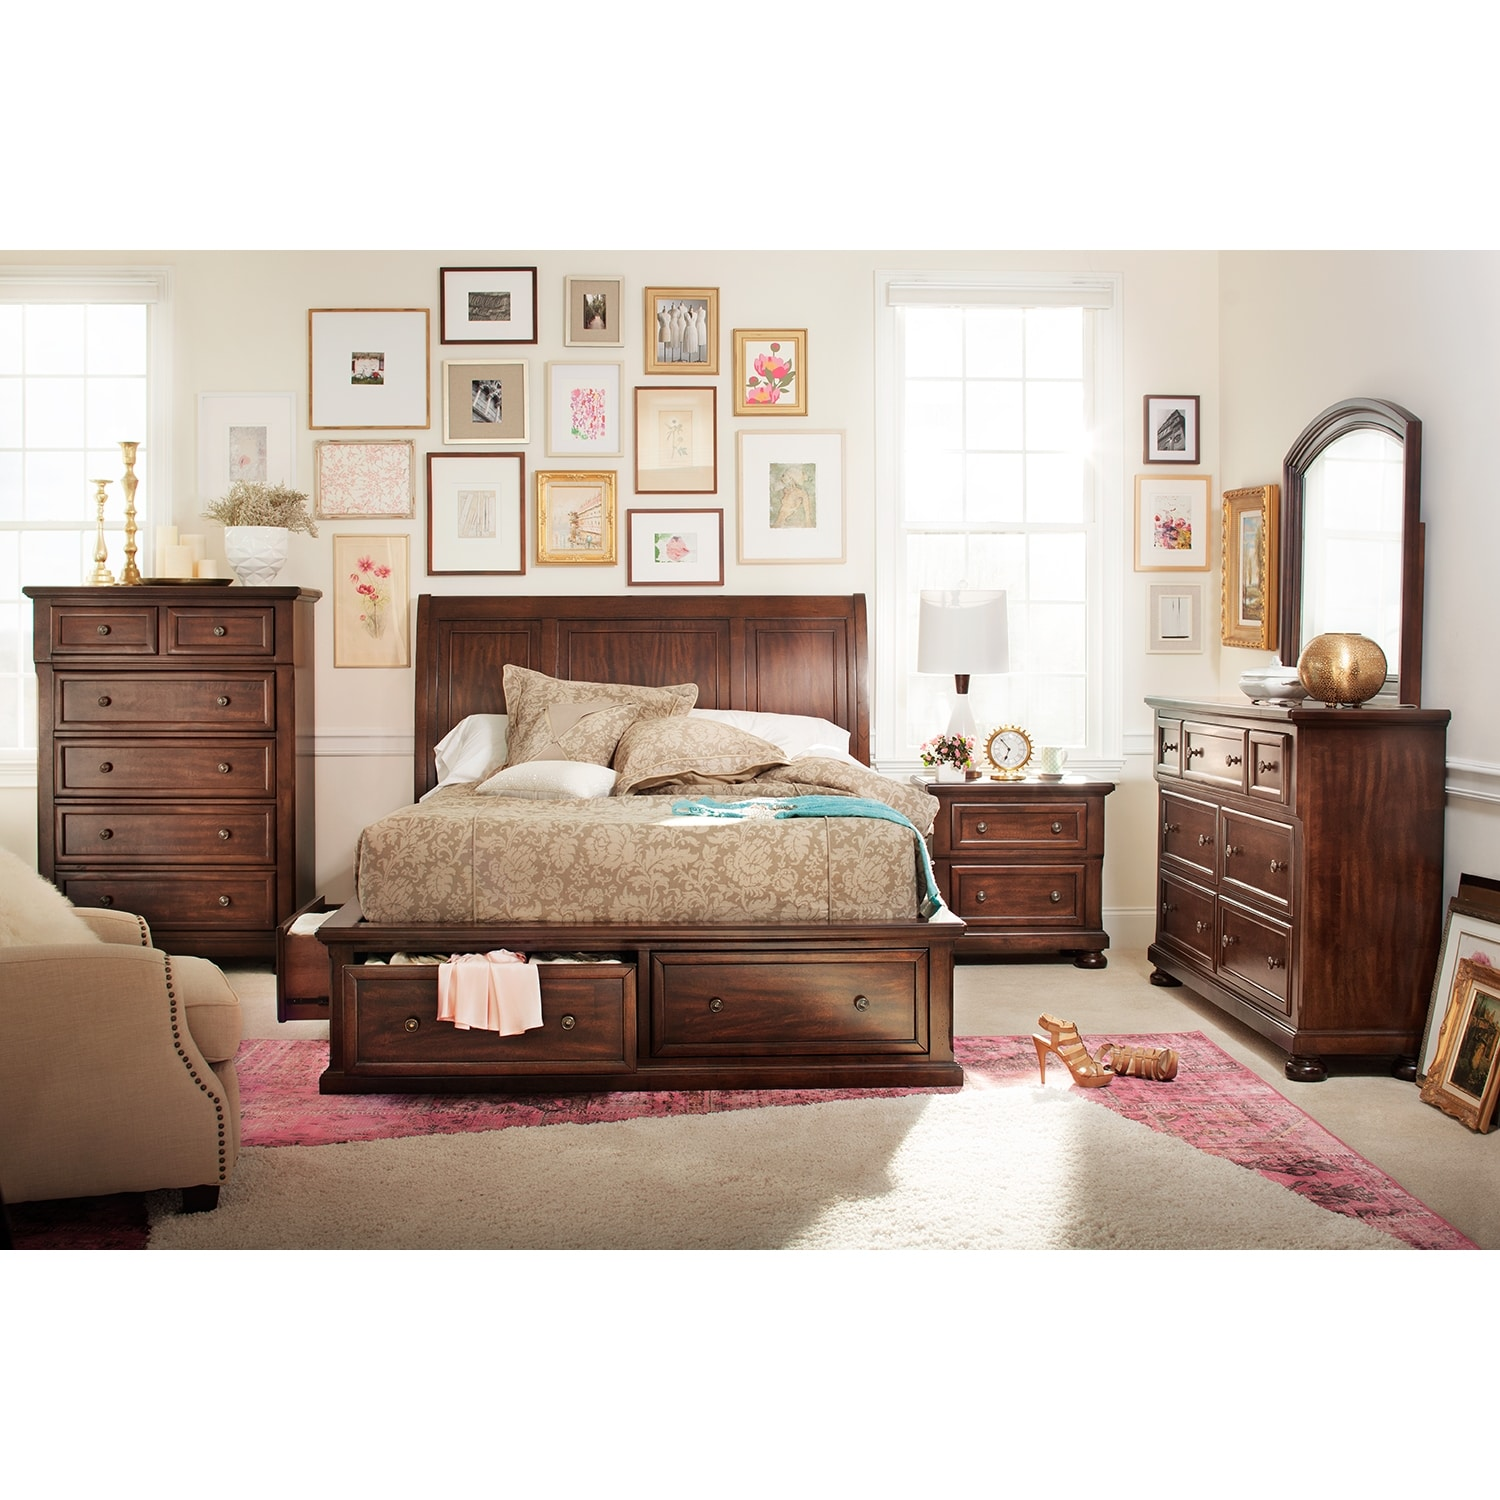 hanover 7 piece queen storage bedroom set cherry value 17687 | 373846 fit inside 7c65 65 composite to center center 7c65 65 background color white